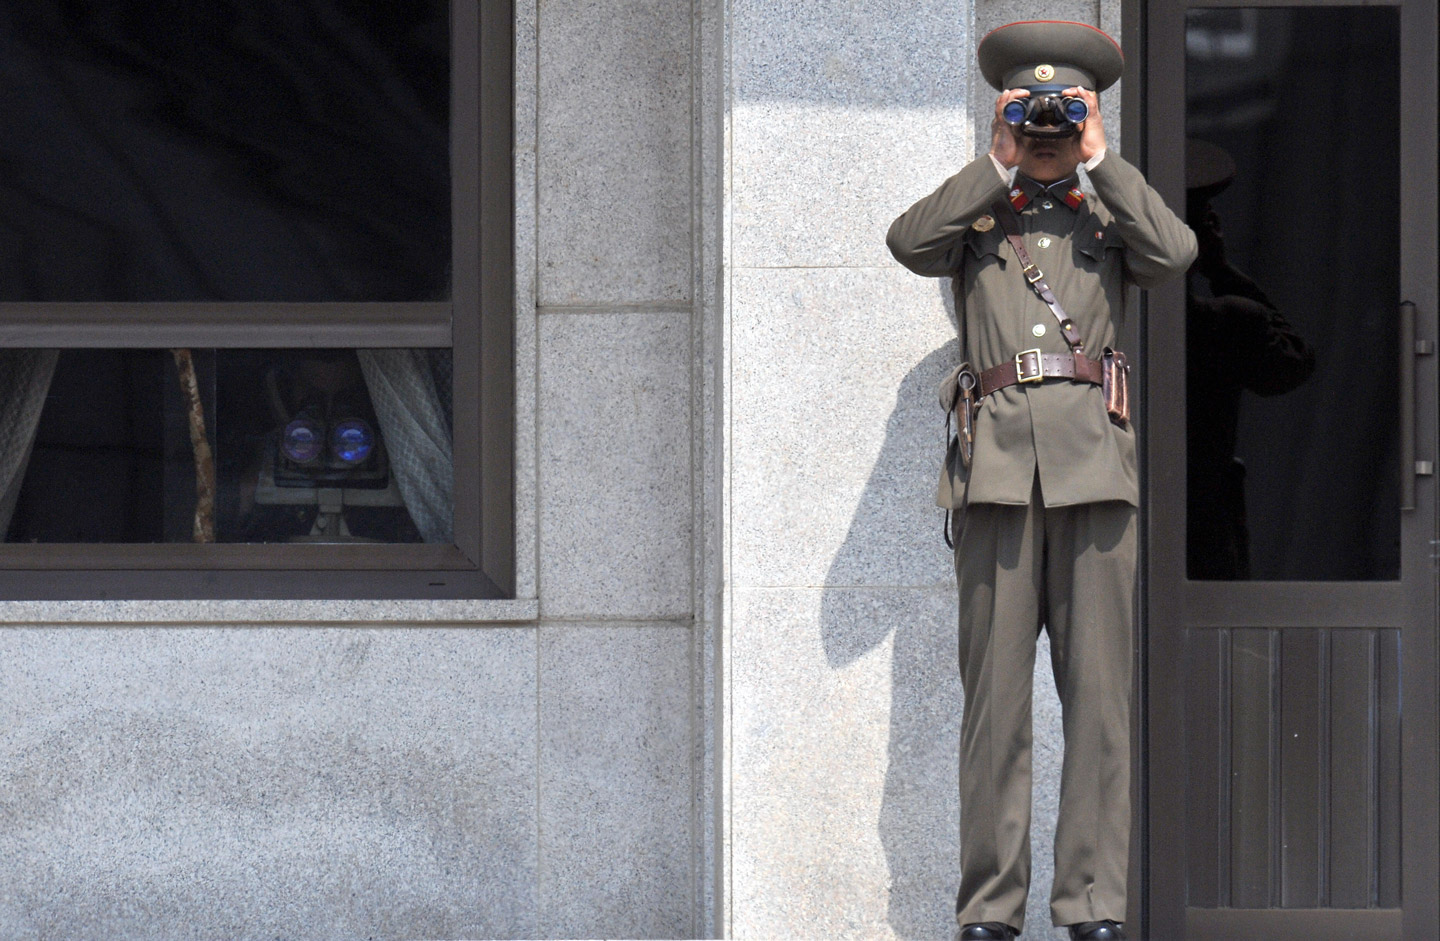 A North Korean soldier looks at the South side through binoculars at the truce village of Panmunjom in the demilitarized zone dividing two Koreas on April 9, 2009. North Korea's parliament re-elected Kim Jong-Il to the country's most powerful post, cementing his authority over the hardline communist state despite lingering health questions.  AFP PHOTO/JUNG YEON-JE (Photo credit should read JUNG YEON-JE/AFP/Getty Images)